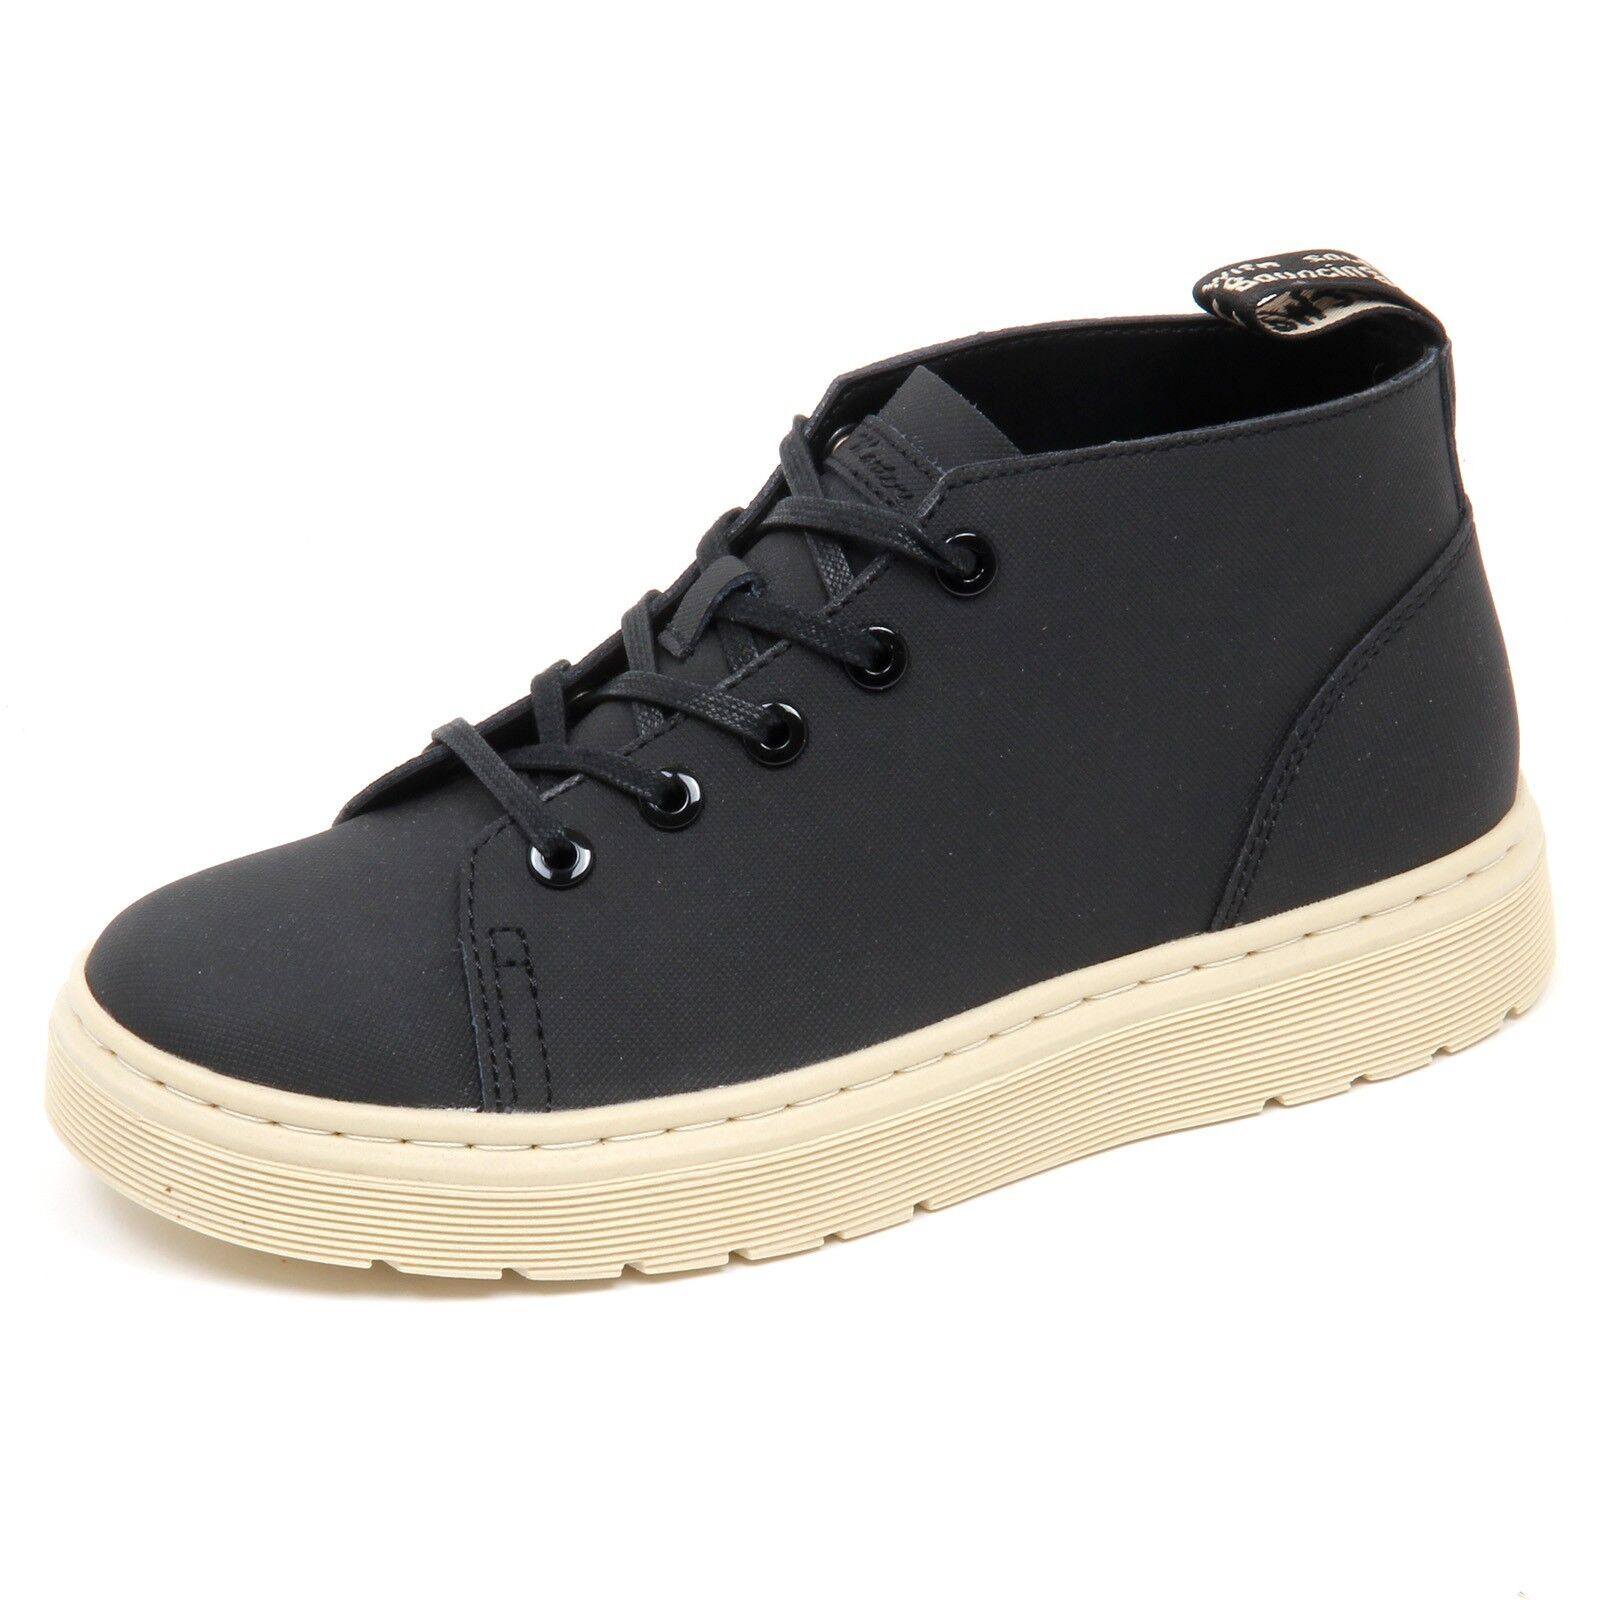 D6664  (SAMPLE NOT SALE WITHOUT BOX) ecopelle  D6664 sneaker donna DR. MARTENSshoe ee968c